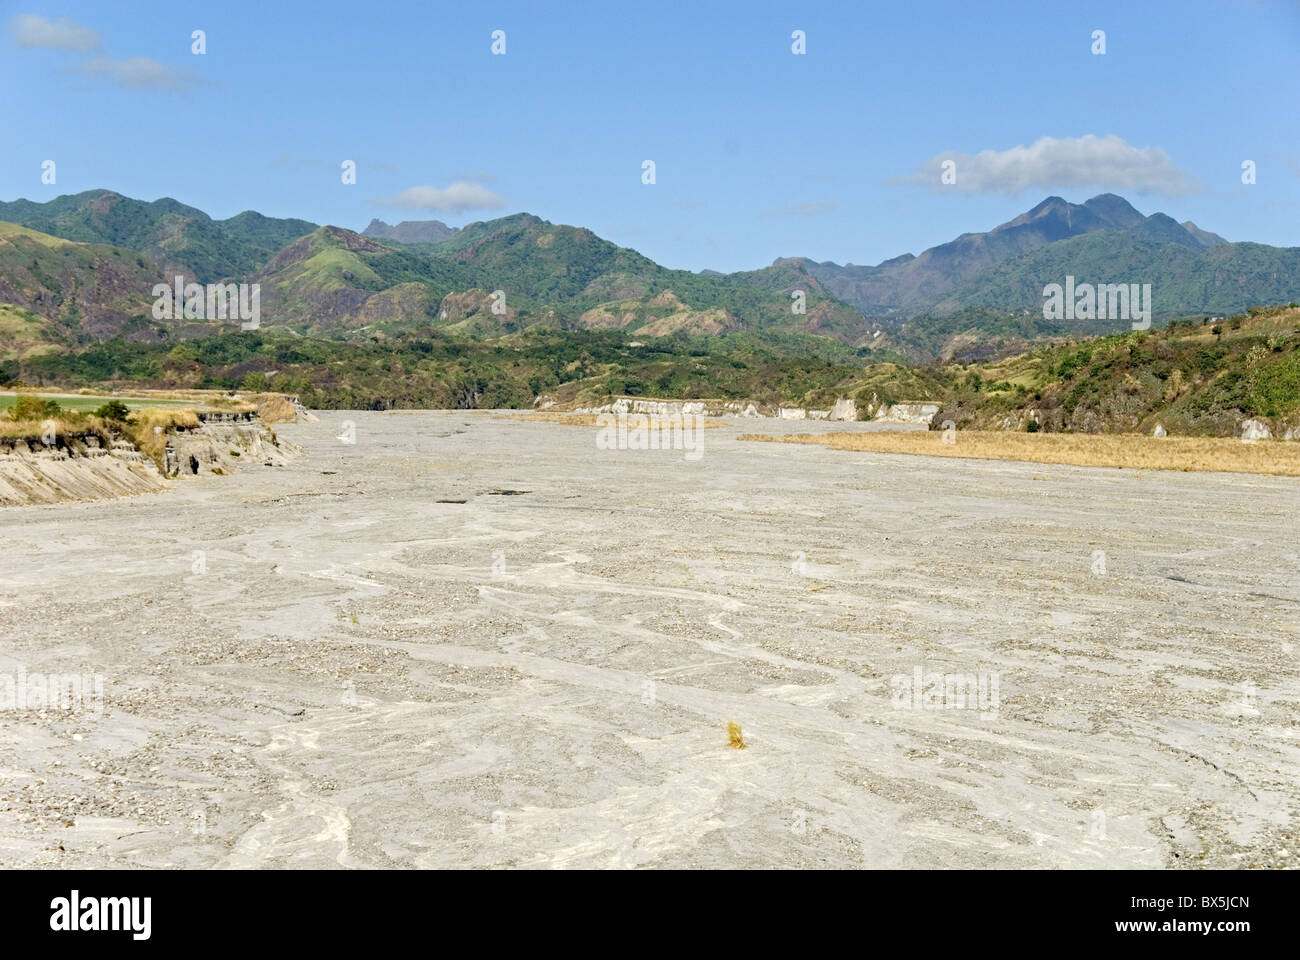 River channel floored with pumice lahar deposits, Pinatubo volcano, northern Luzon, Philippines, Southeast Asia, - Stock Image